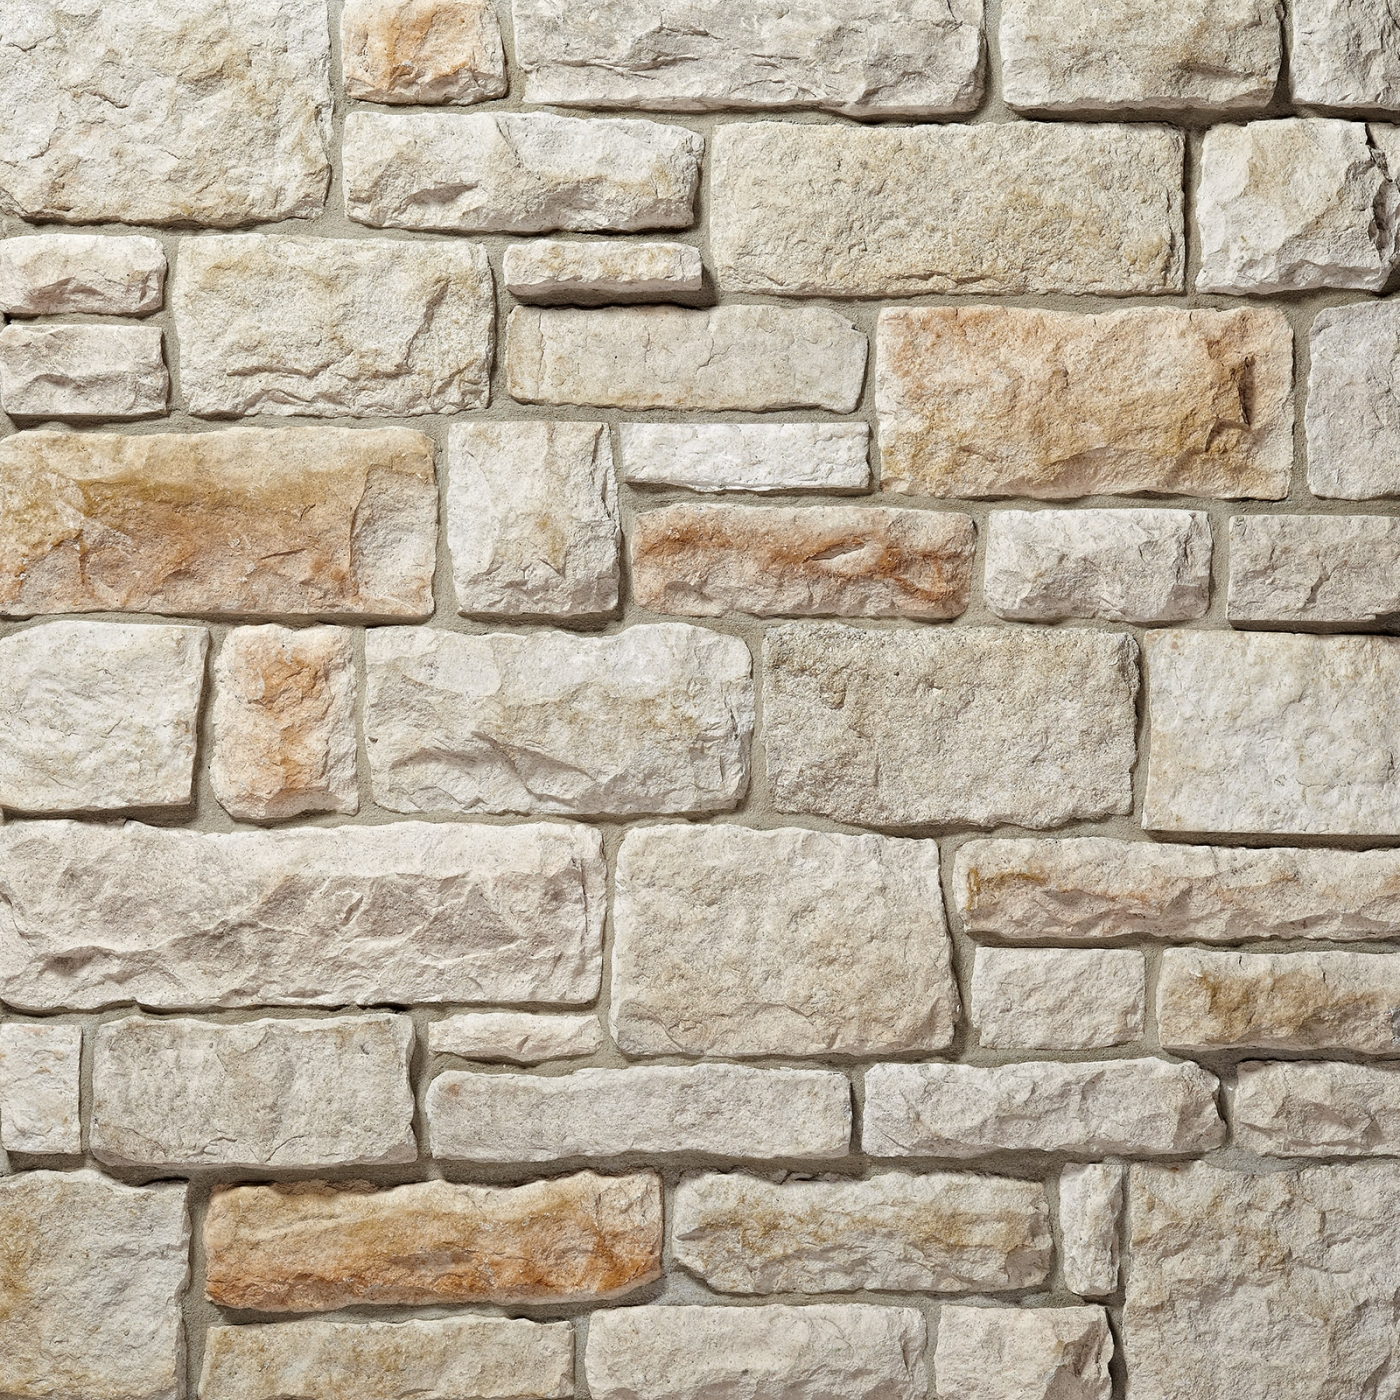 Atglen Cut Stone Stone Veneer from Environmental StoneWorks